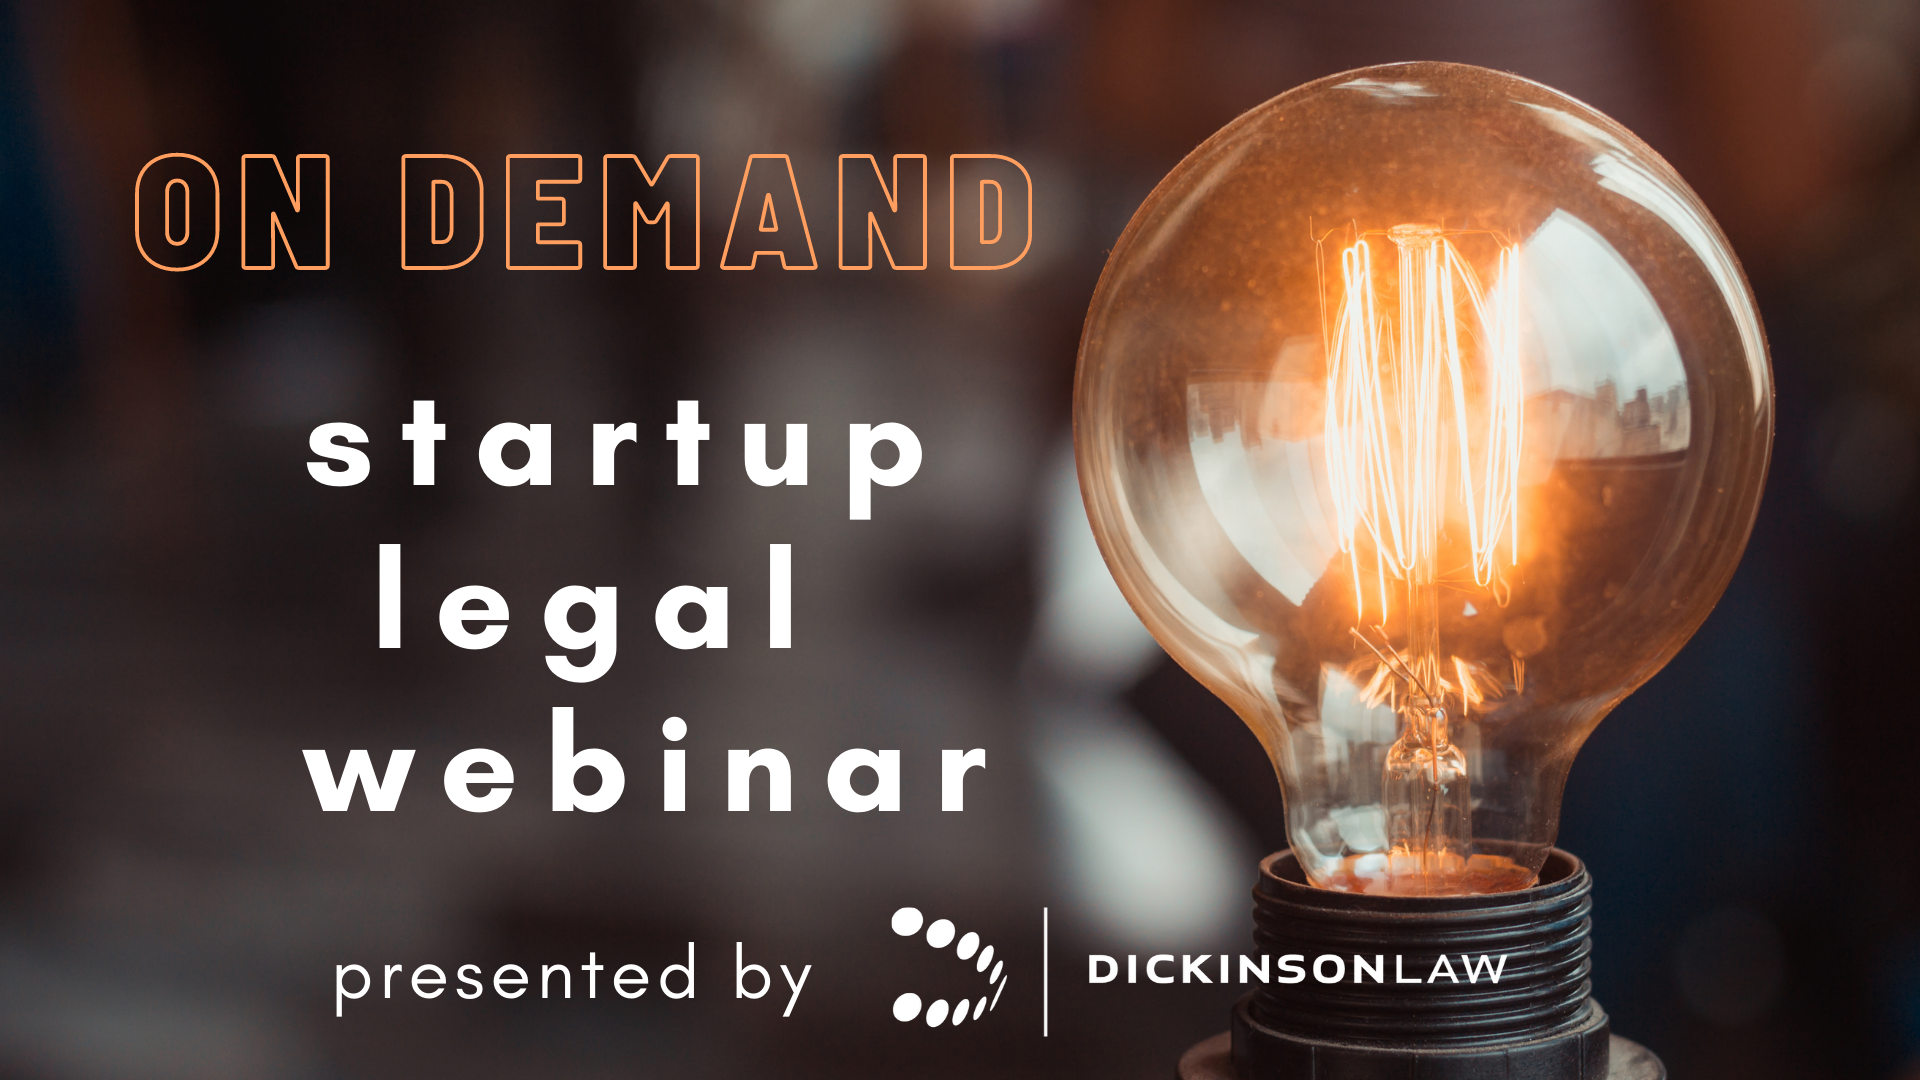 On Demand: Startup Legal Webinar